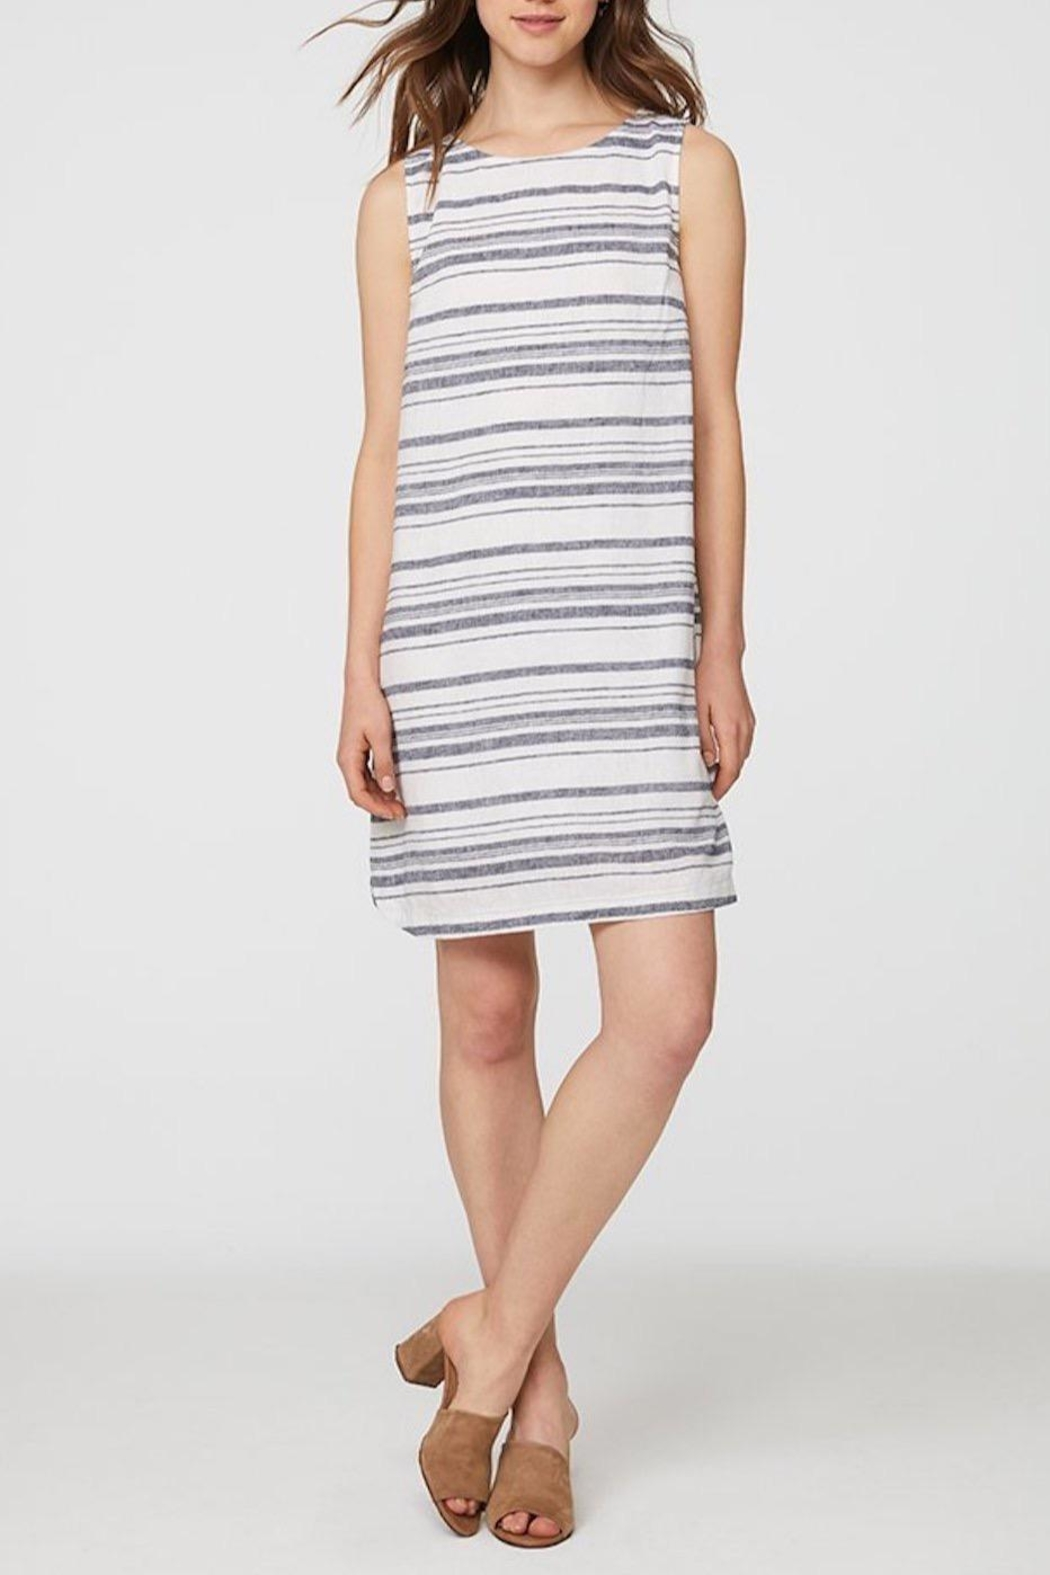 beachlunchlounge Striped Linen Dress - Main Image